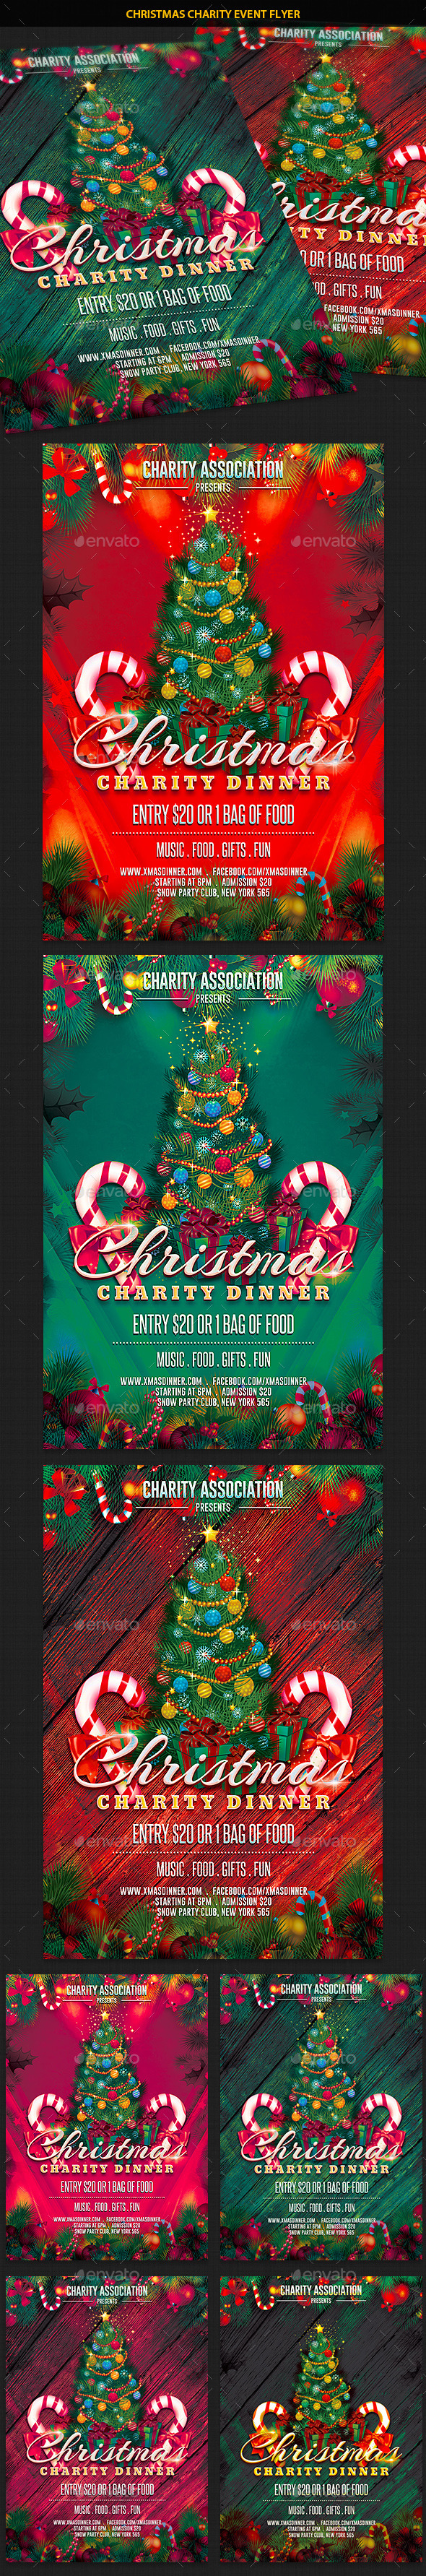 Christmas Charity Event Party Flyer - Holidays Events